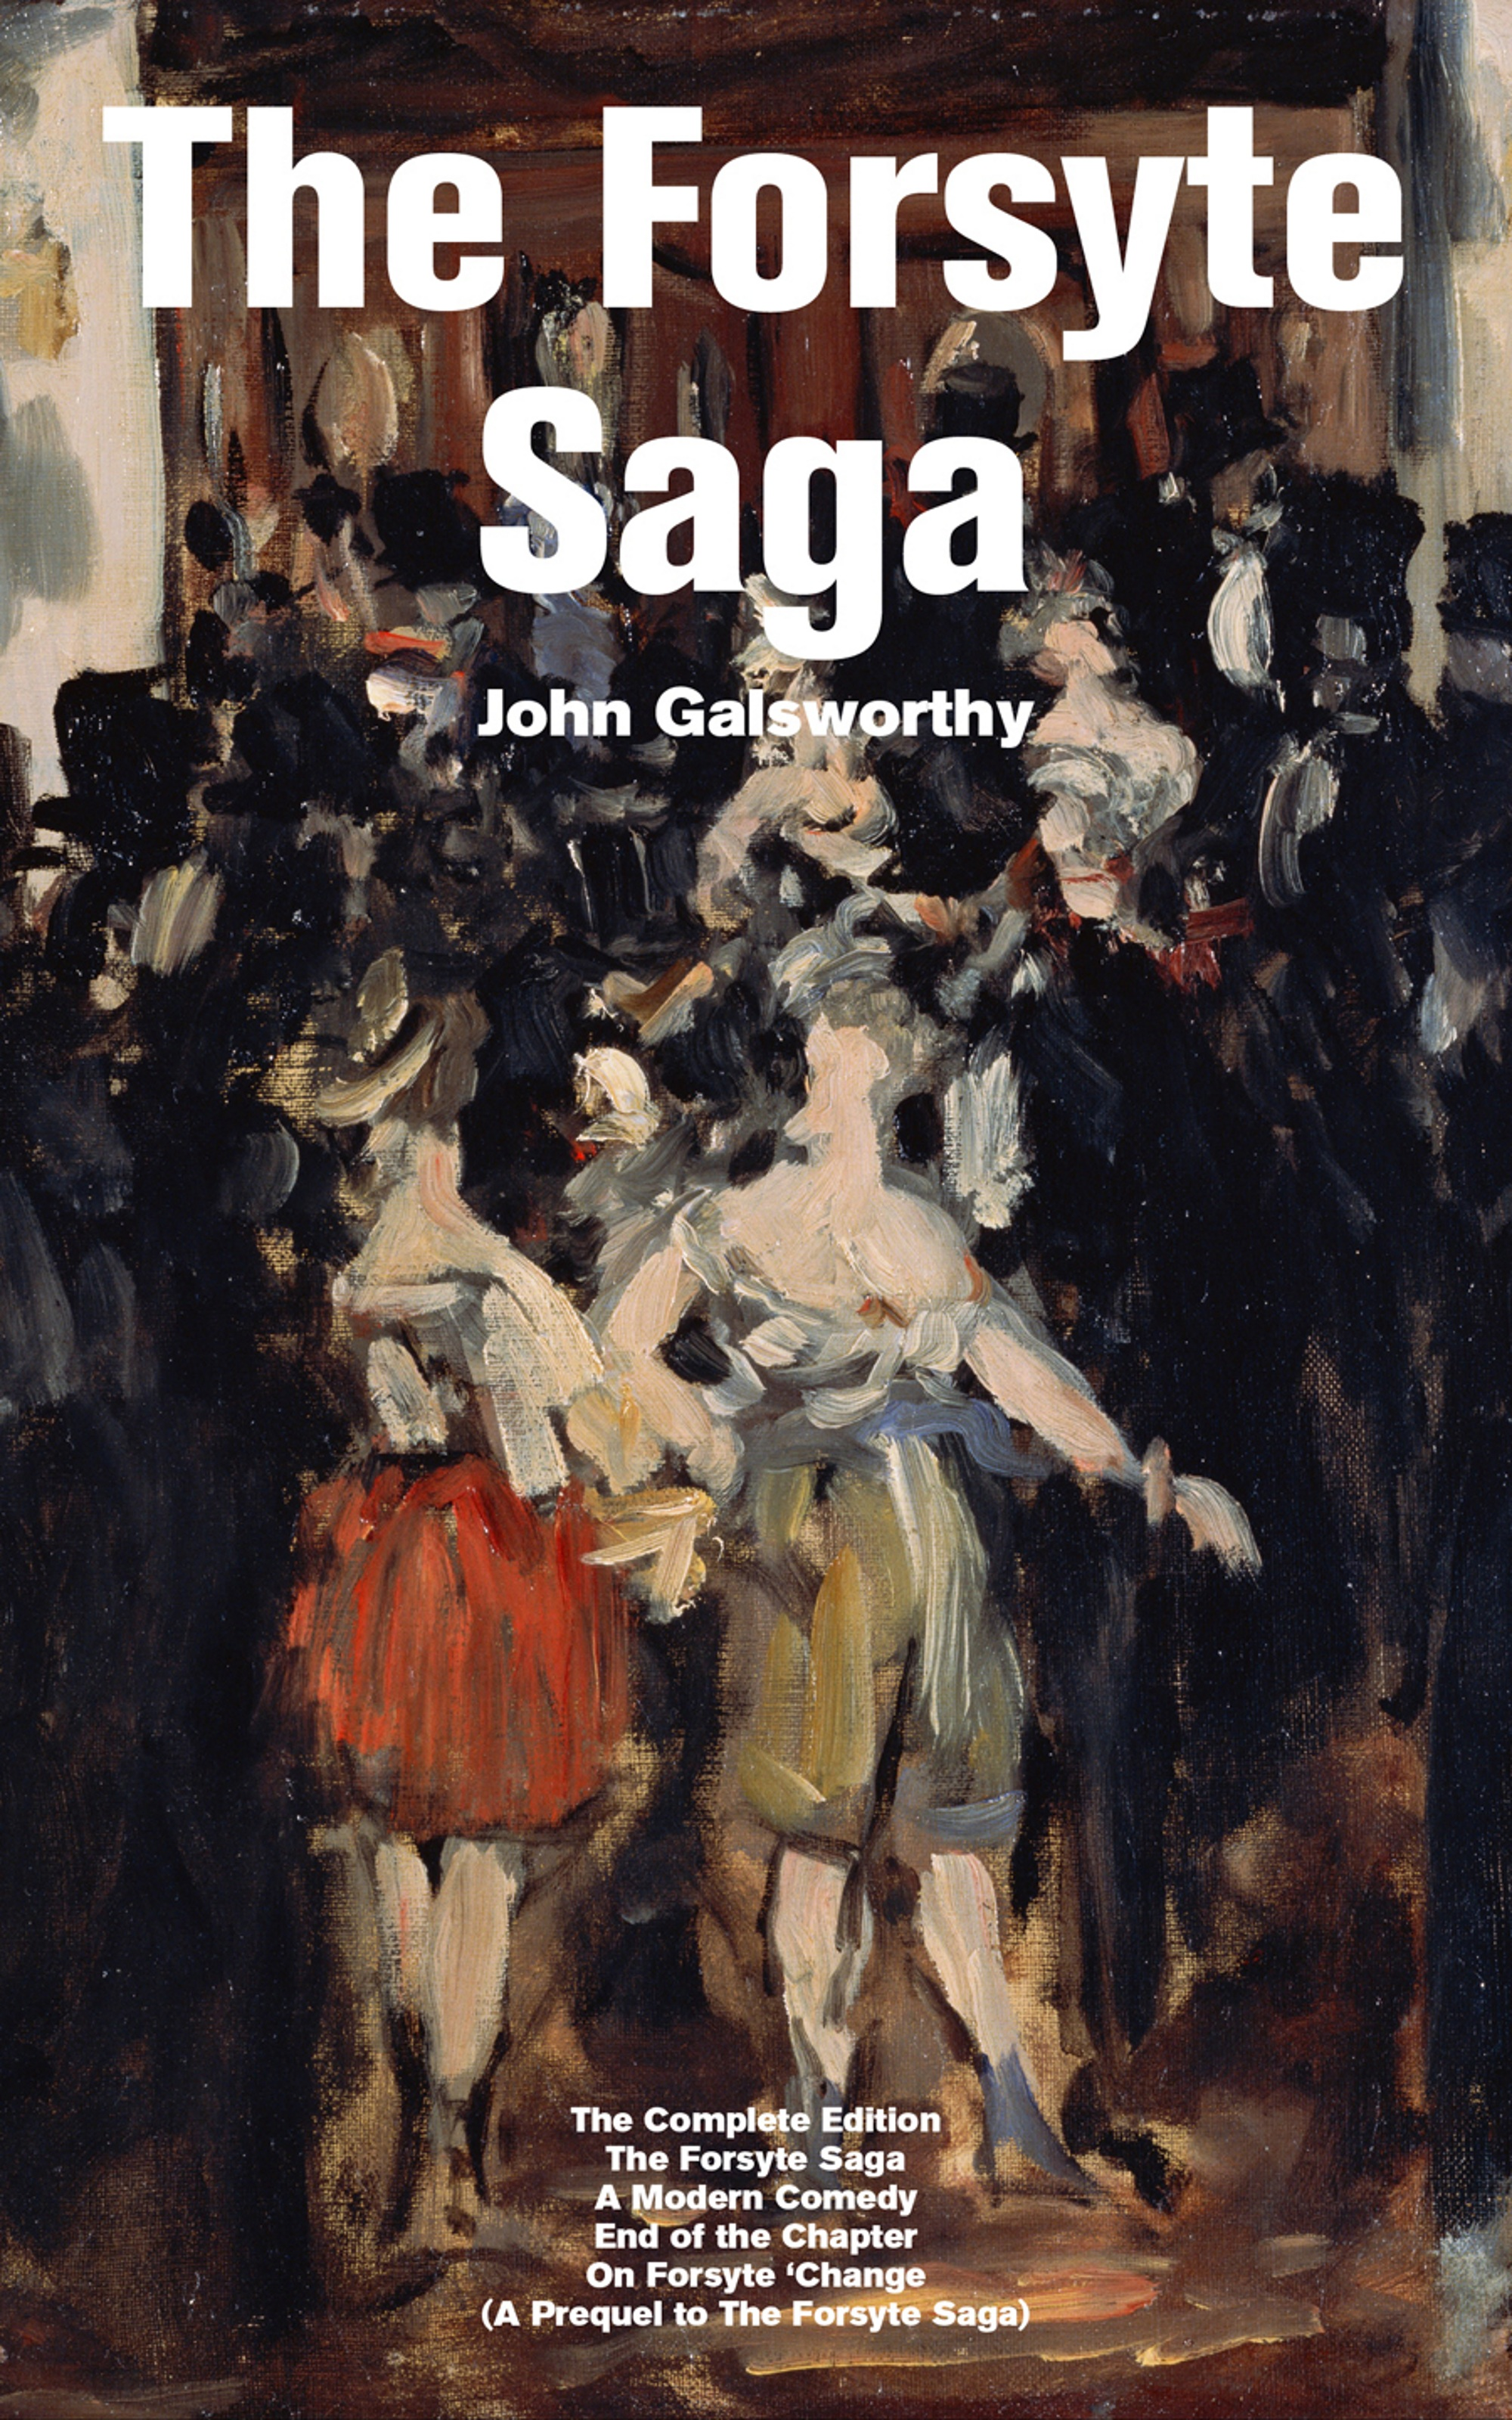 John Galsworthy The Forsyte Saga - The Complete Edition: The Forsyte Saga + A Modern Comedy + End of the Chapter + On Forsyte 'Change (A Prequel to The Forsyte Saga) john row the historie of the kirk of scotland icelandic edition